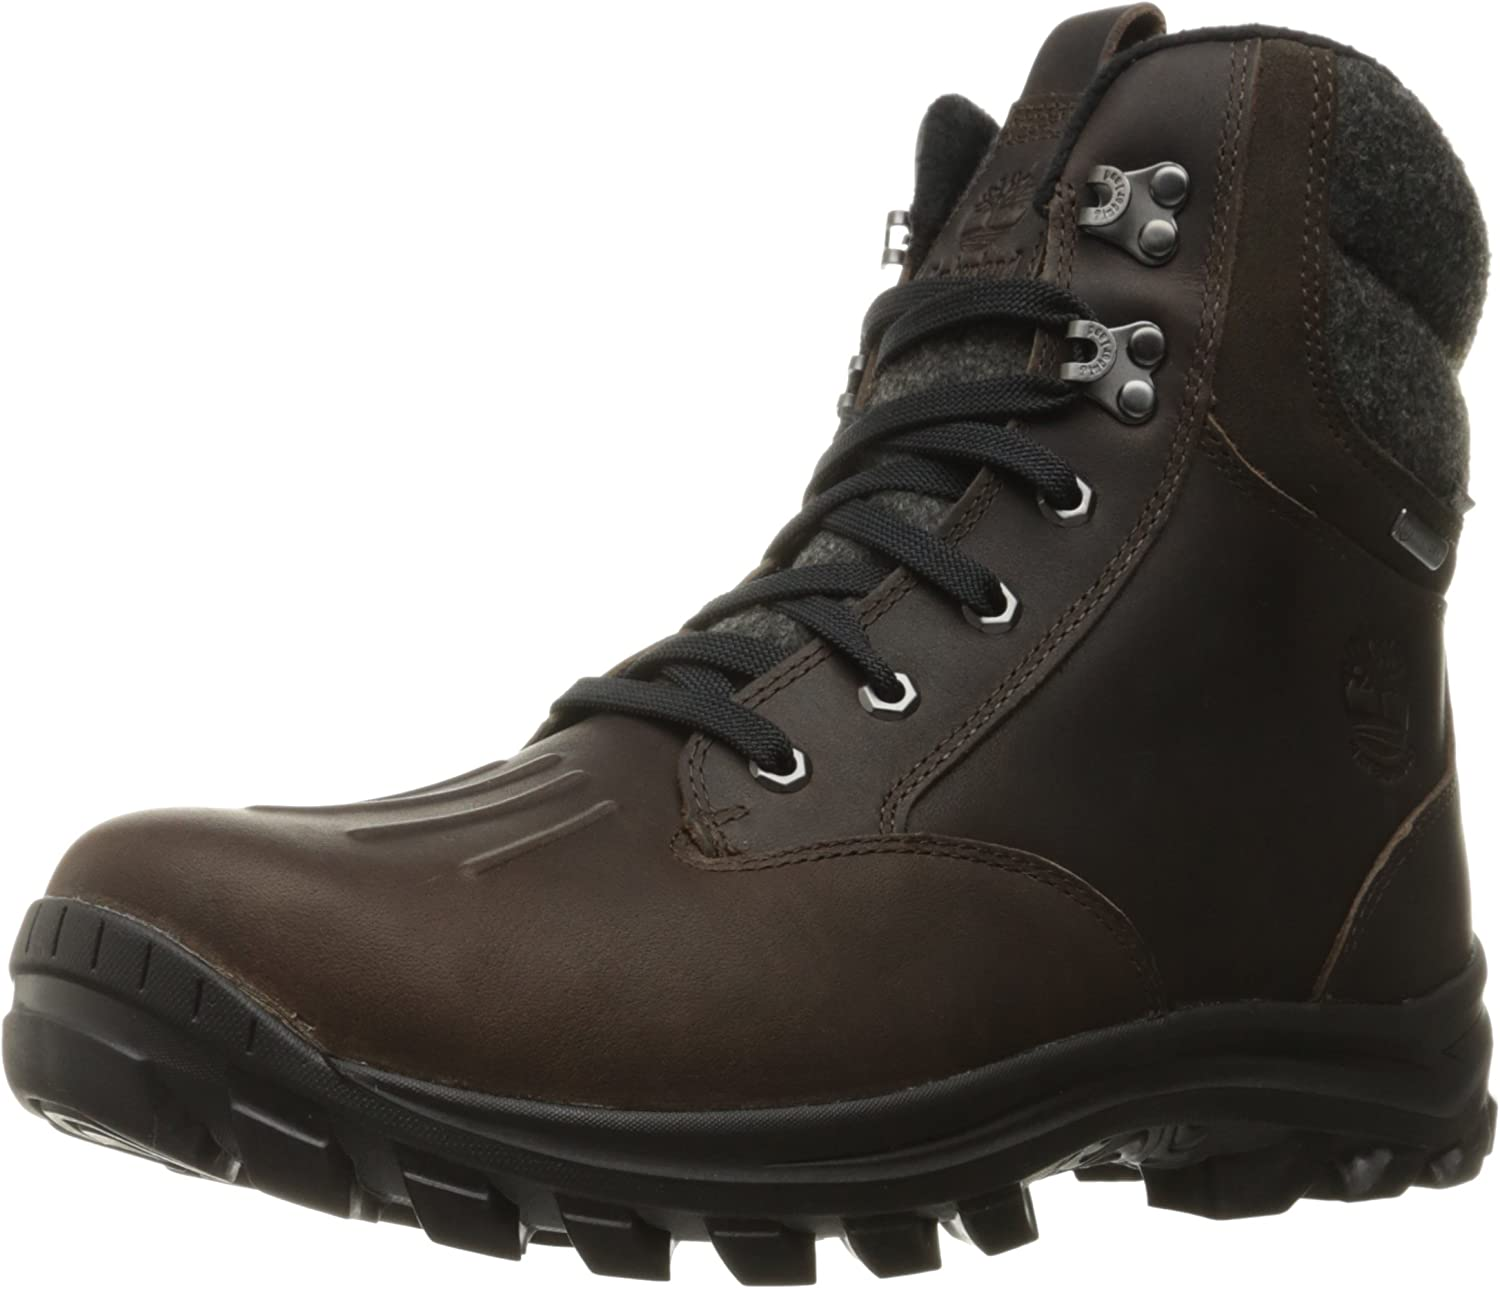 Náutico cultura Engaño  Amazon.com | Timberland Men's Chillberg Mid Waterproof Insulated Snow Boot  Full Grain | Snow Boots